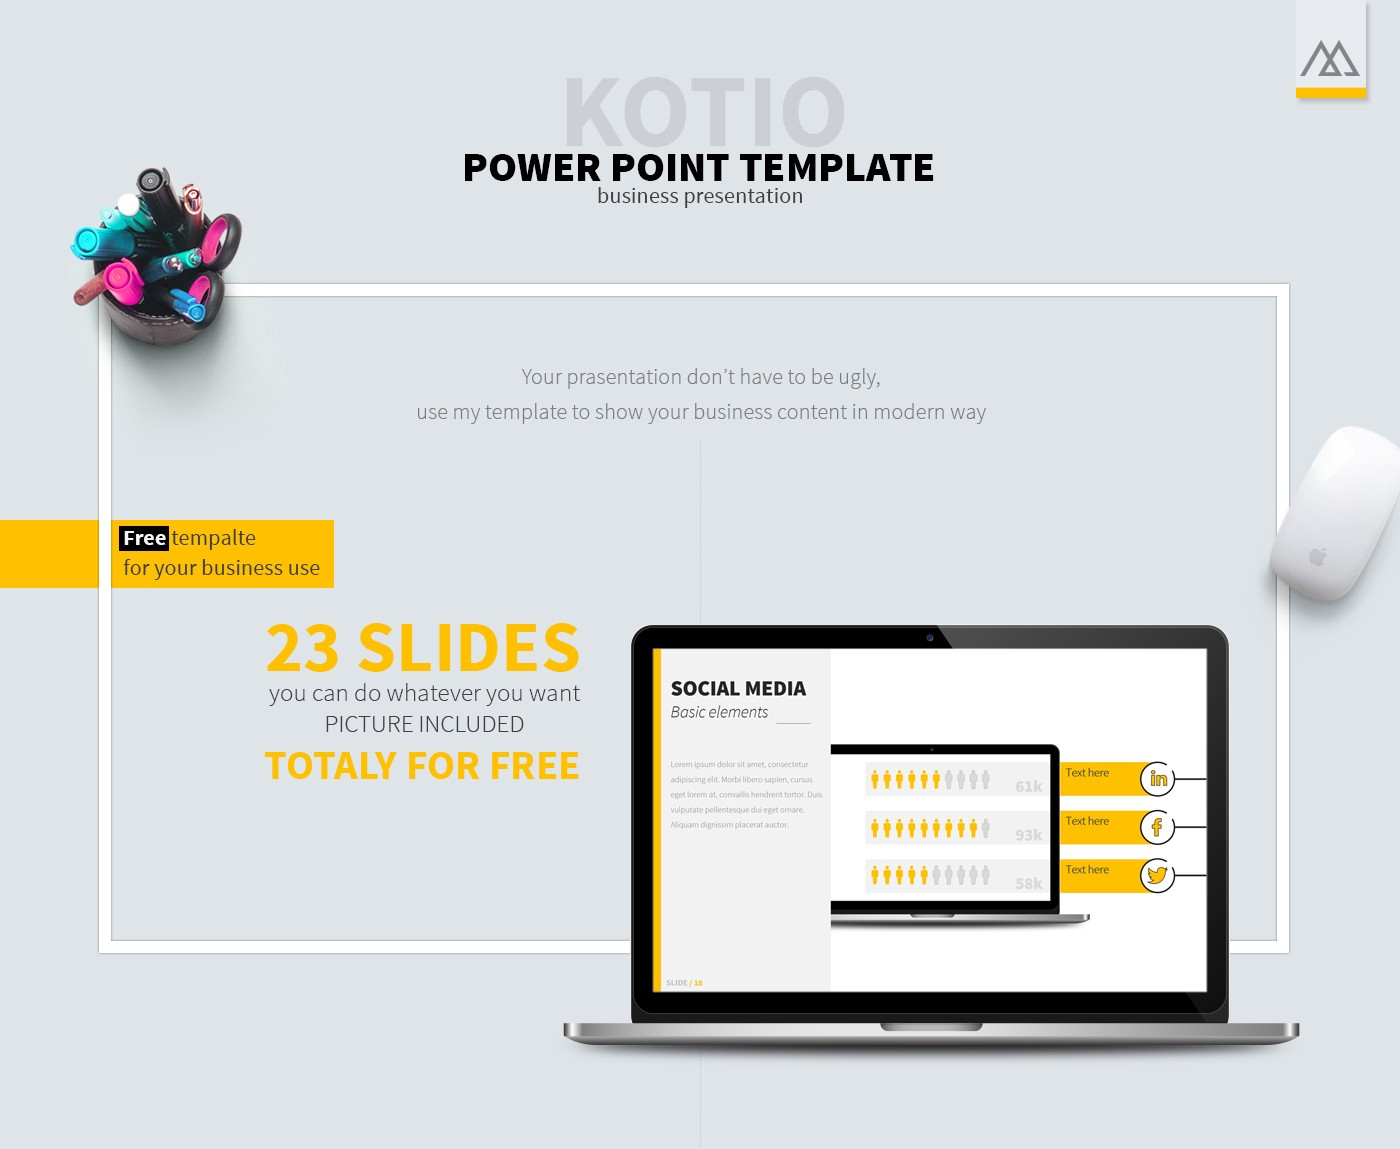 40 free cool powerpoint templates for presentations you can customize every slide to fit your presentation and its ready to use photos are easy to access therefore no time wasted fbccfo Image collections